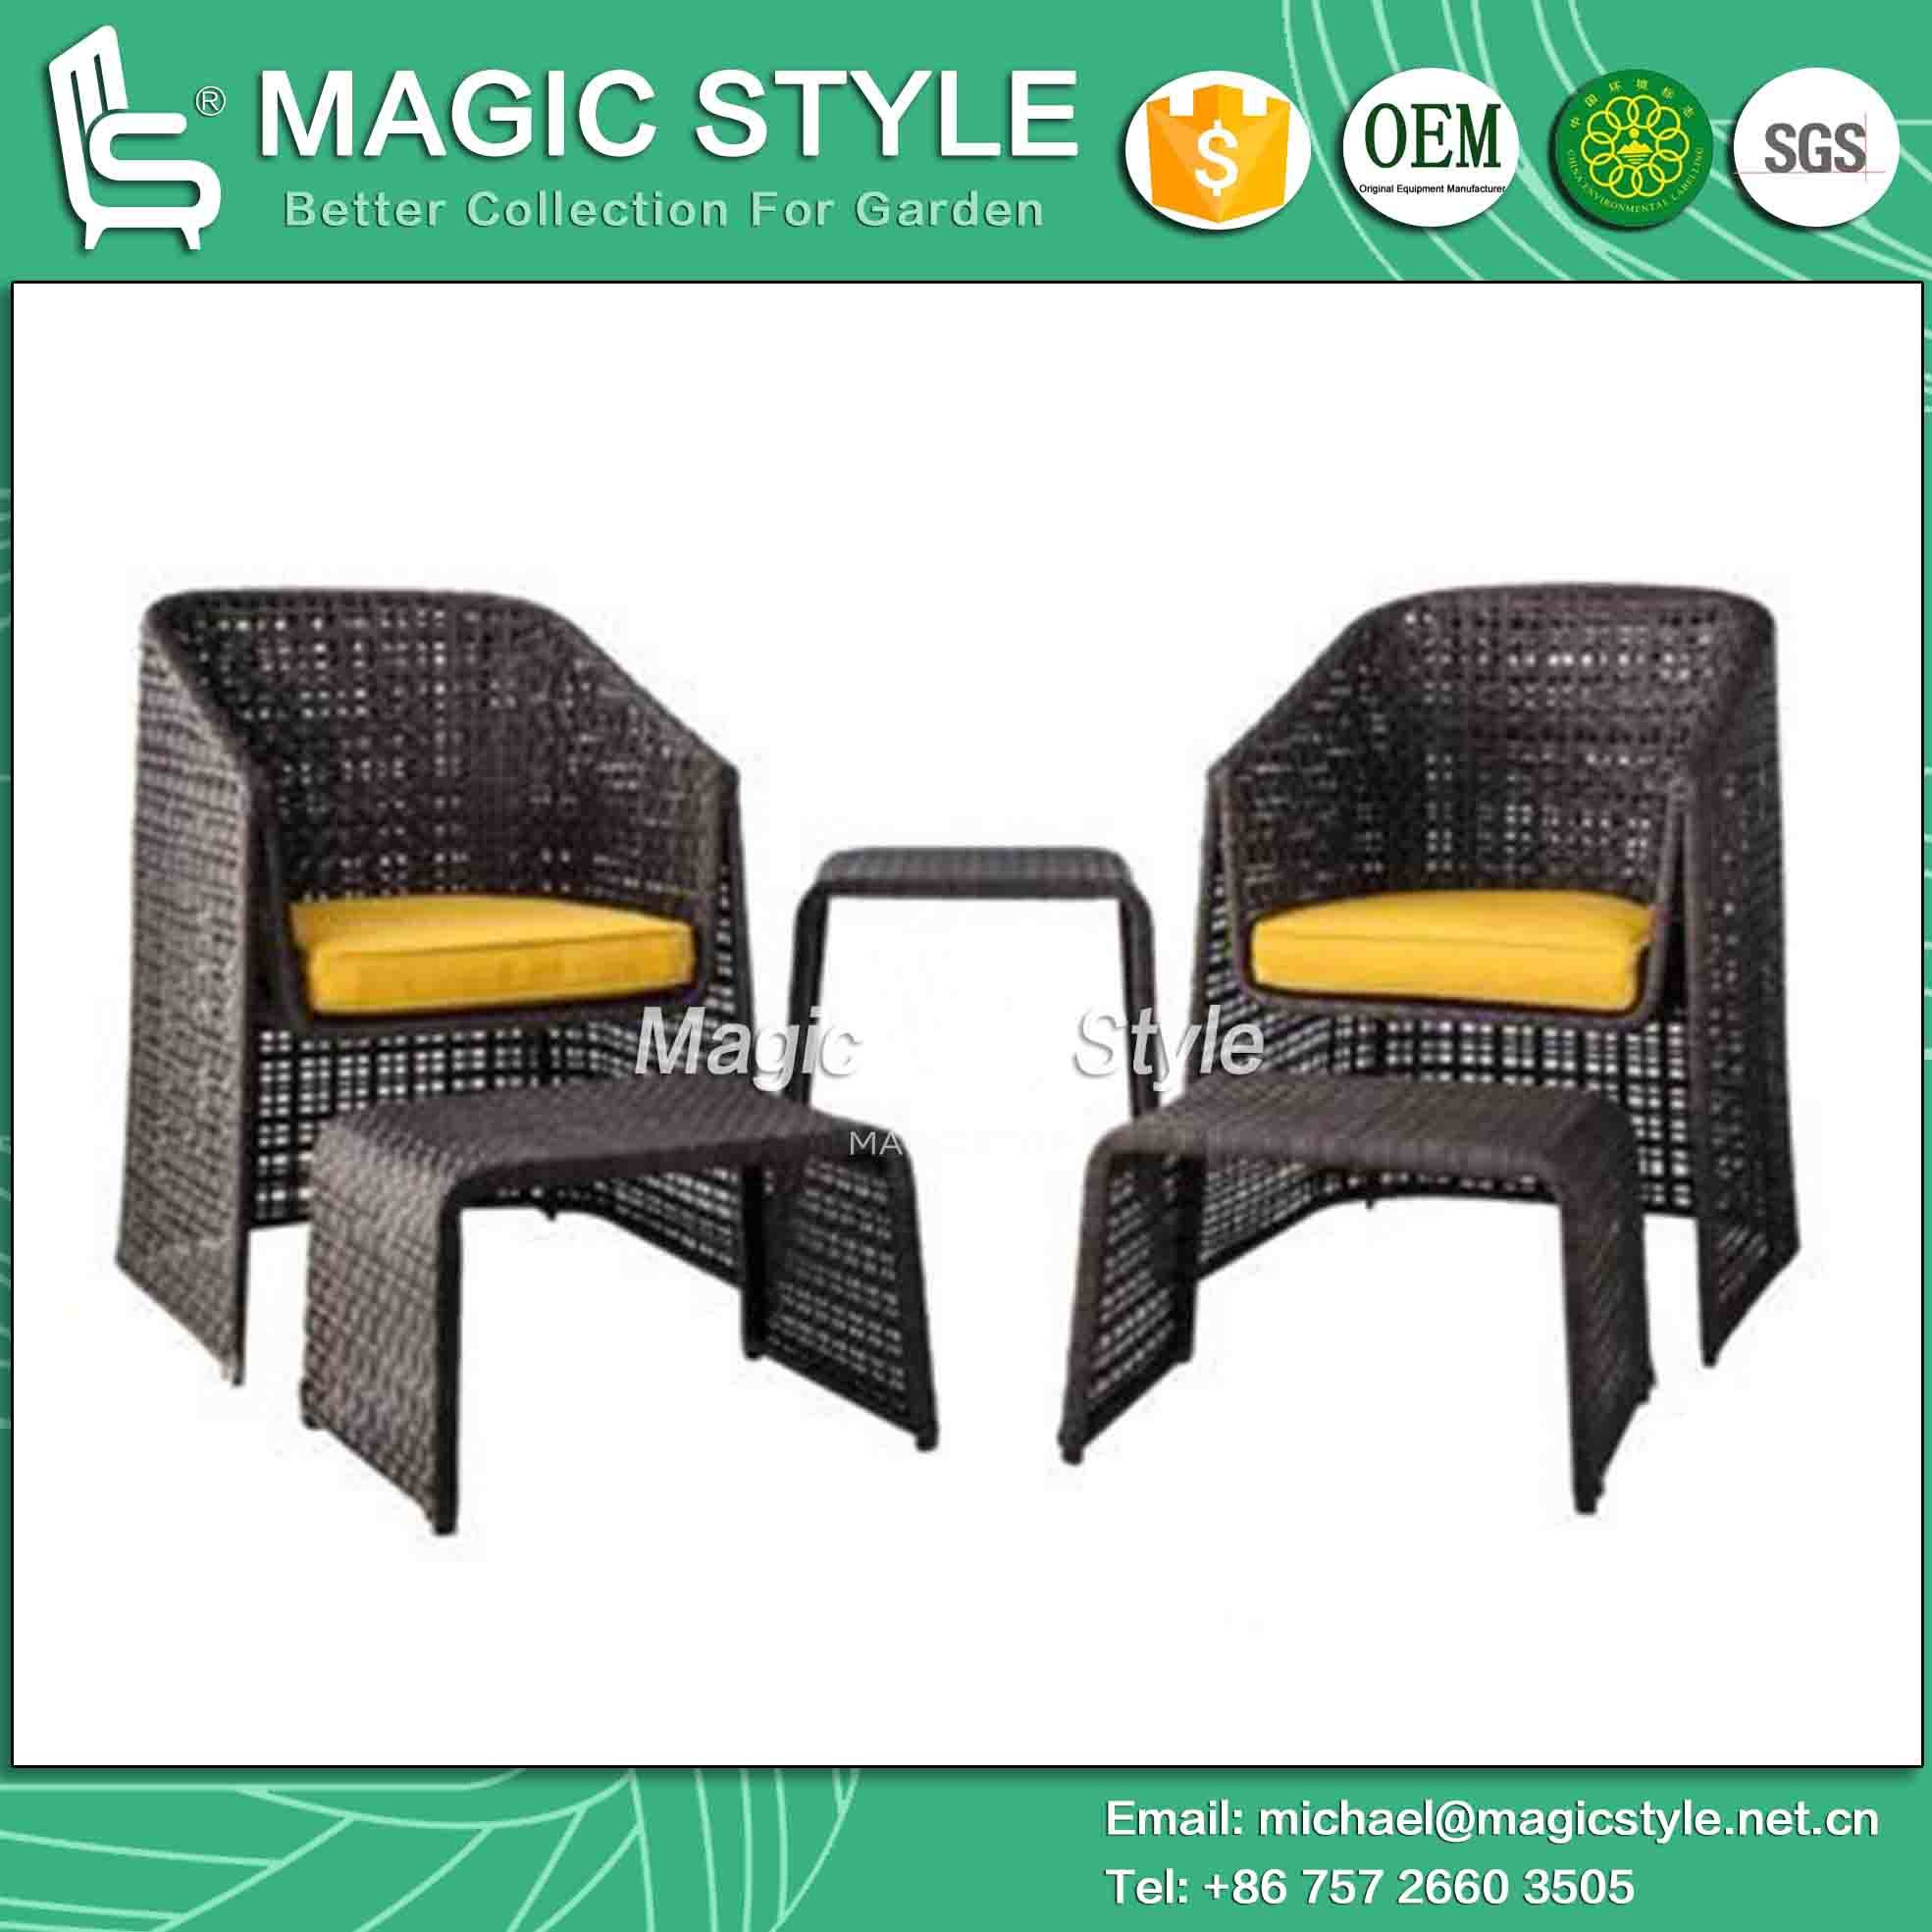 China Rattan Coffee Set Leisure Chair Rattan Chair Footstool (Magic Style)    China Outdoor Furniture, Wicker Furniture